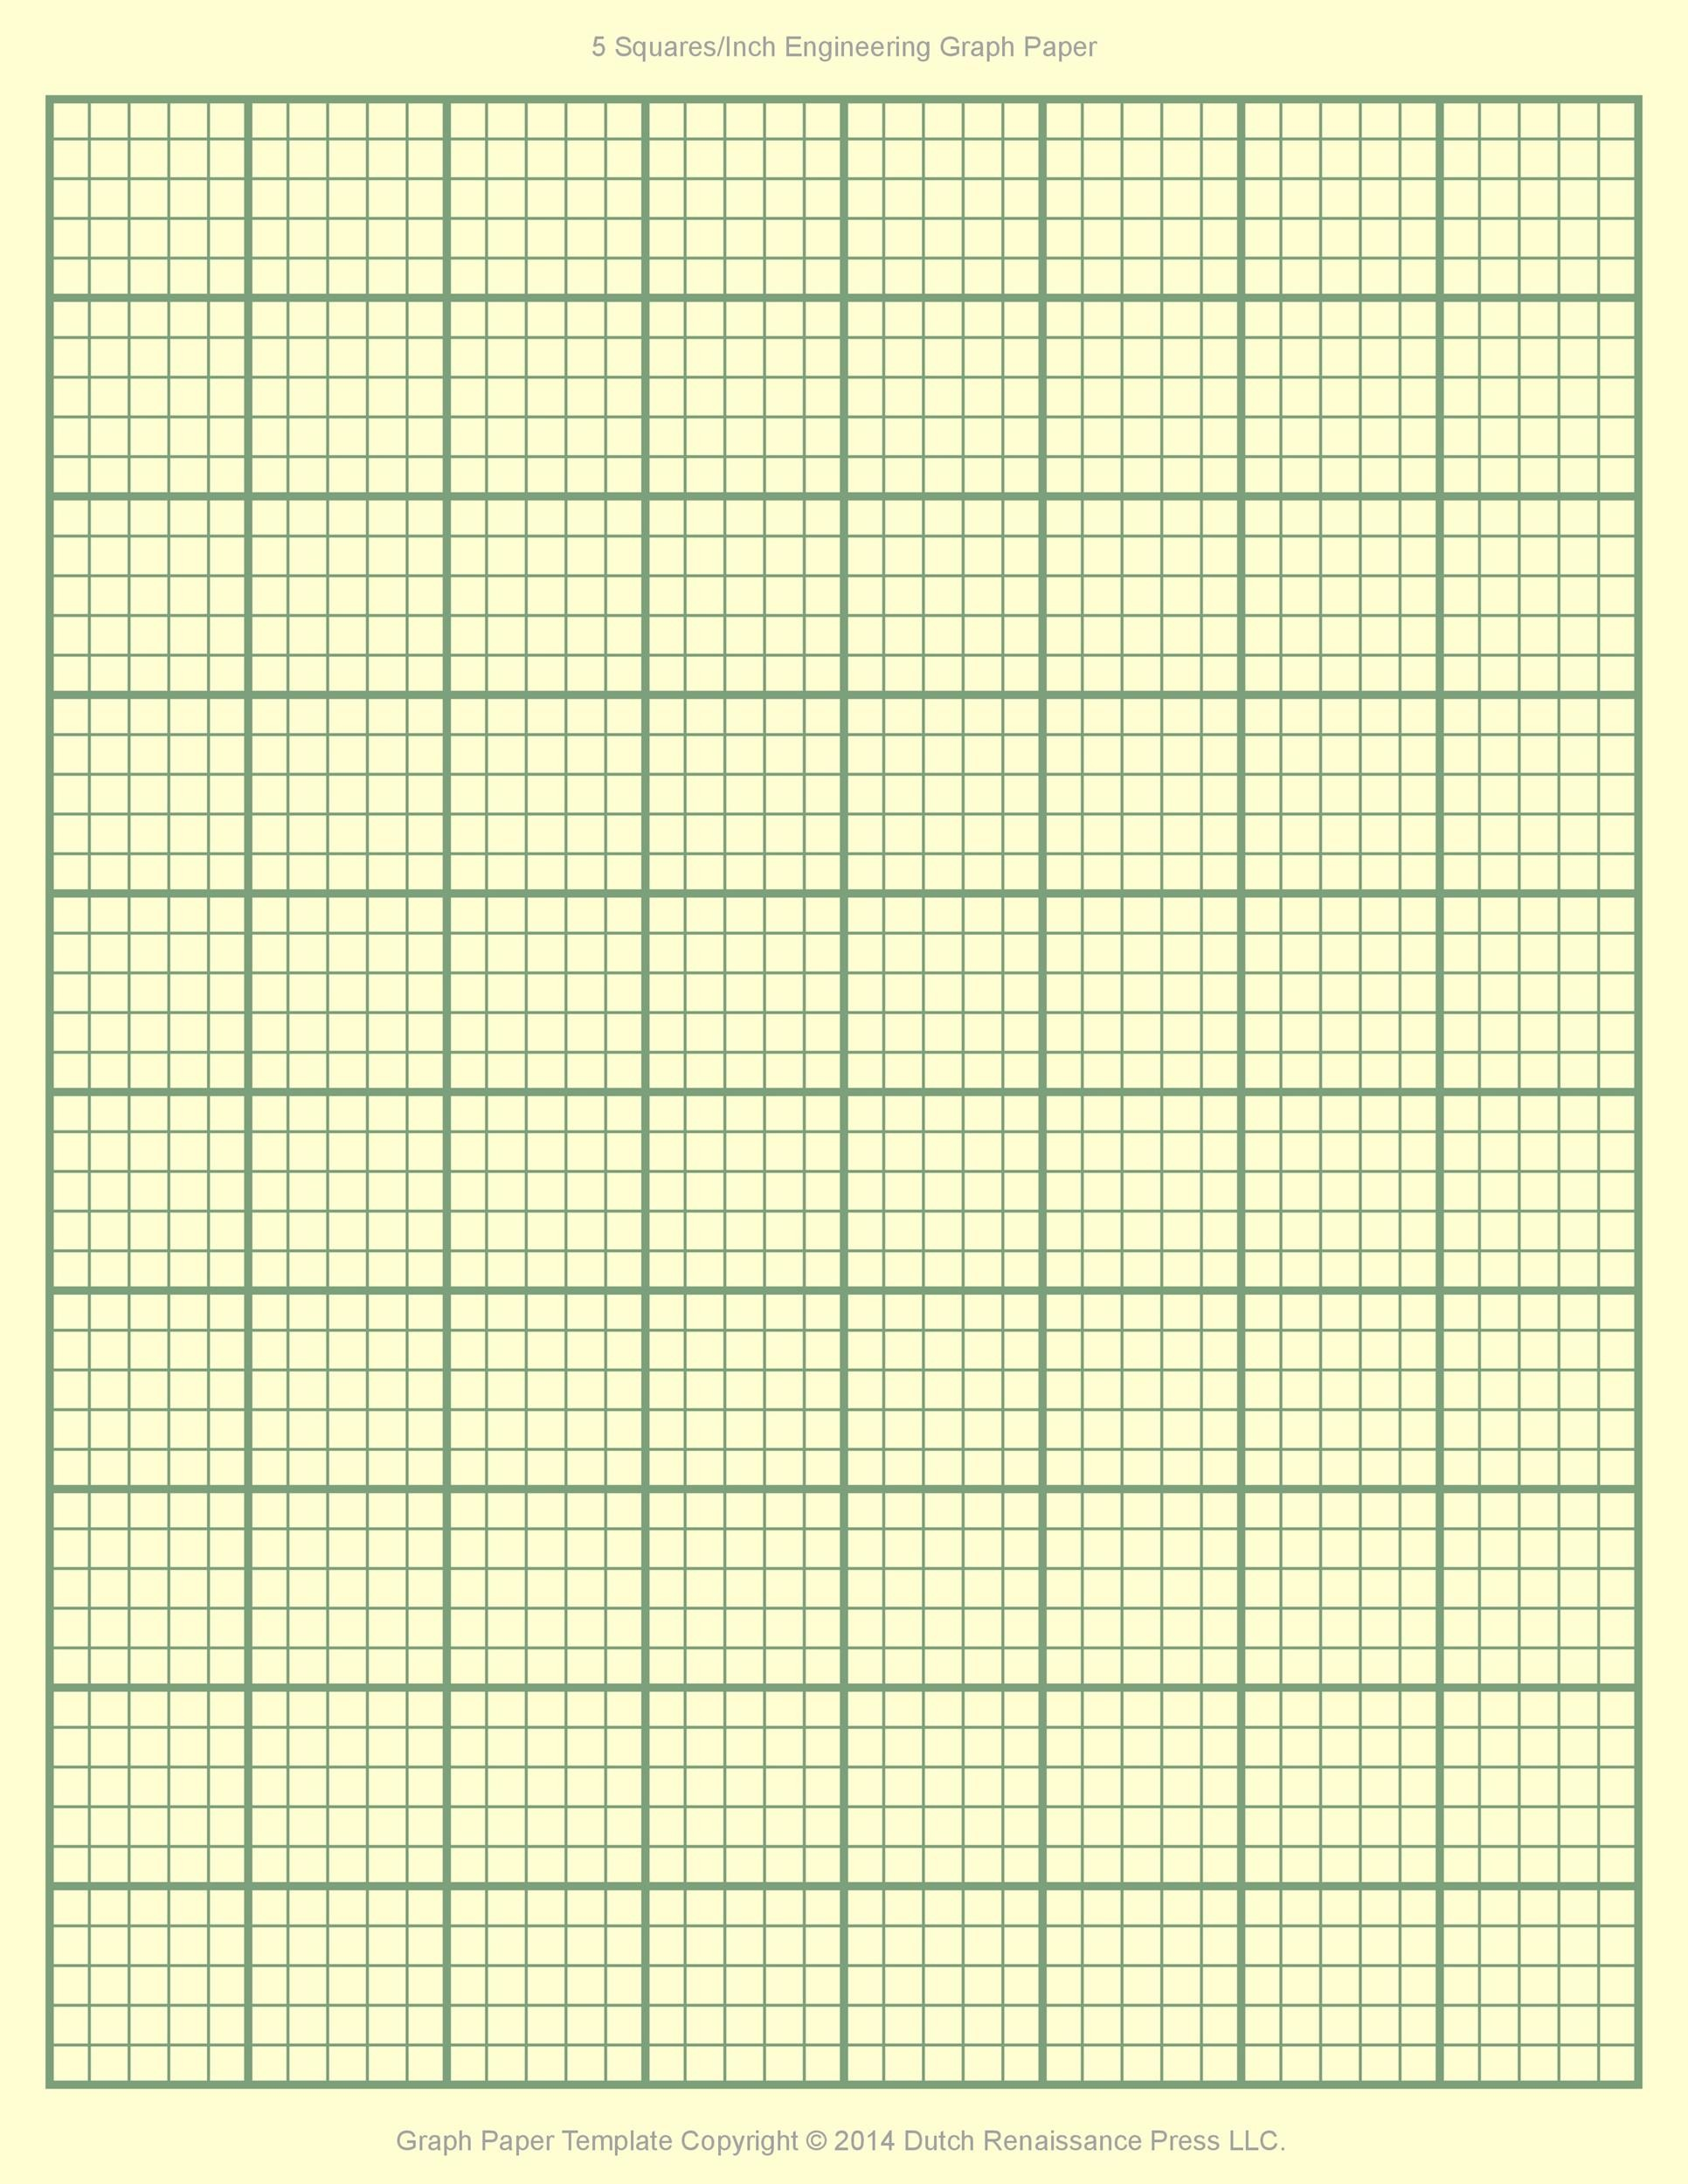 Microsoft Word Graph Paper Template Blank Writing Template Graph Paper  Template 06 Microsoft Word Graph Paper Templatehtml Making Graph Paper In  Word  Making Graph Paper In Word